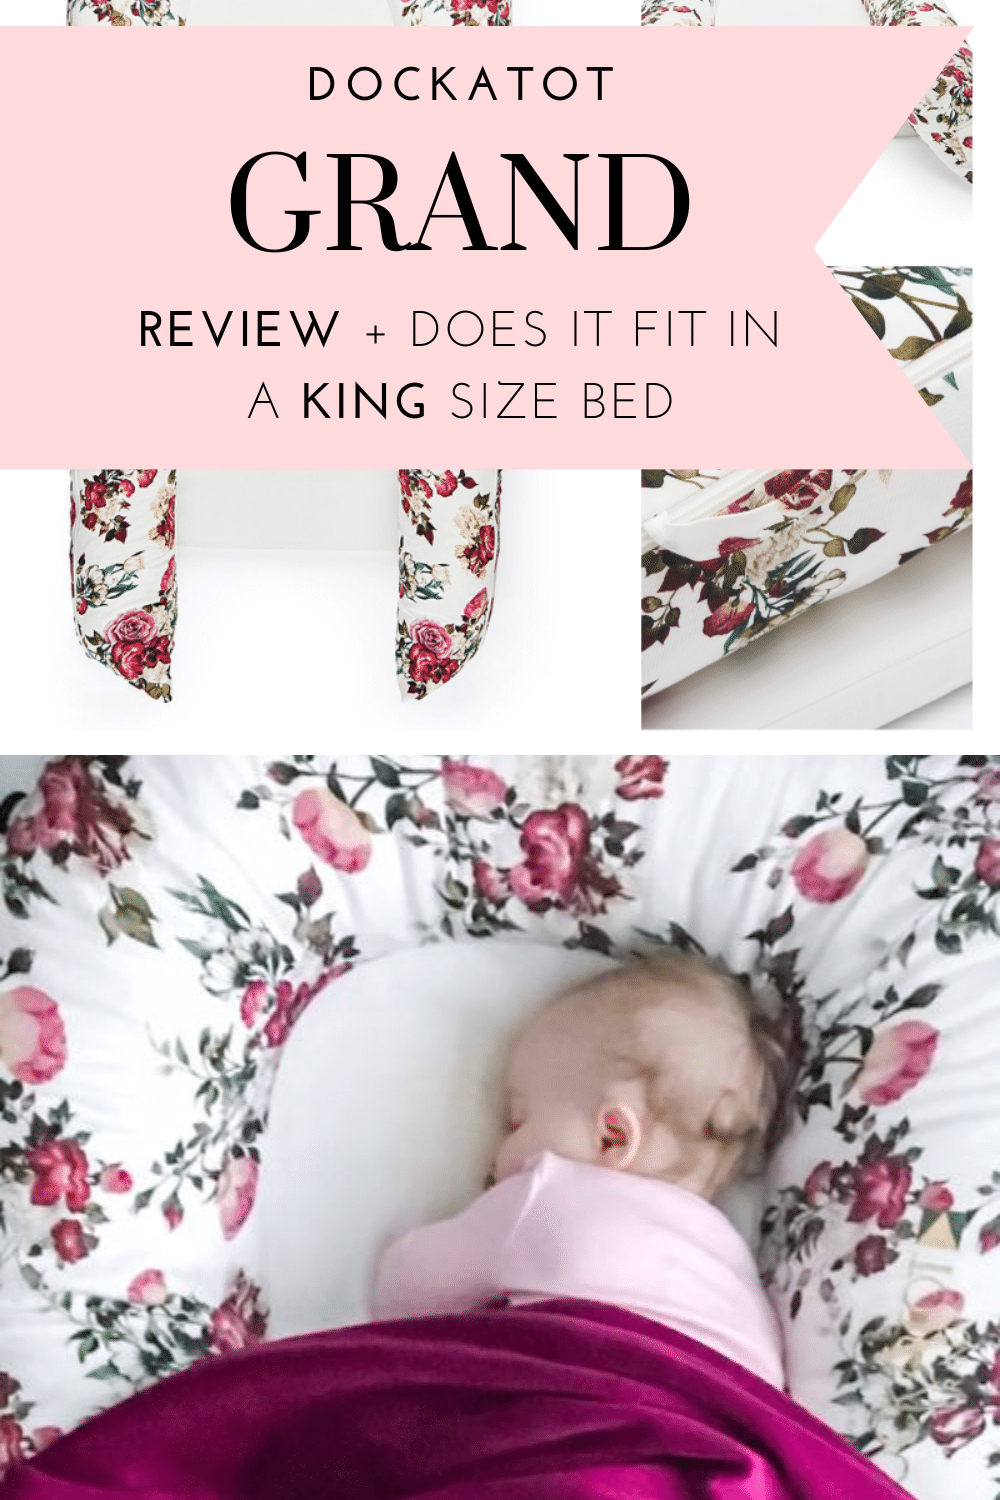 DOCKATOT GRAND REVIEW + How Dockatot Grand Fits in a Kind Size Bed